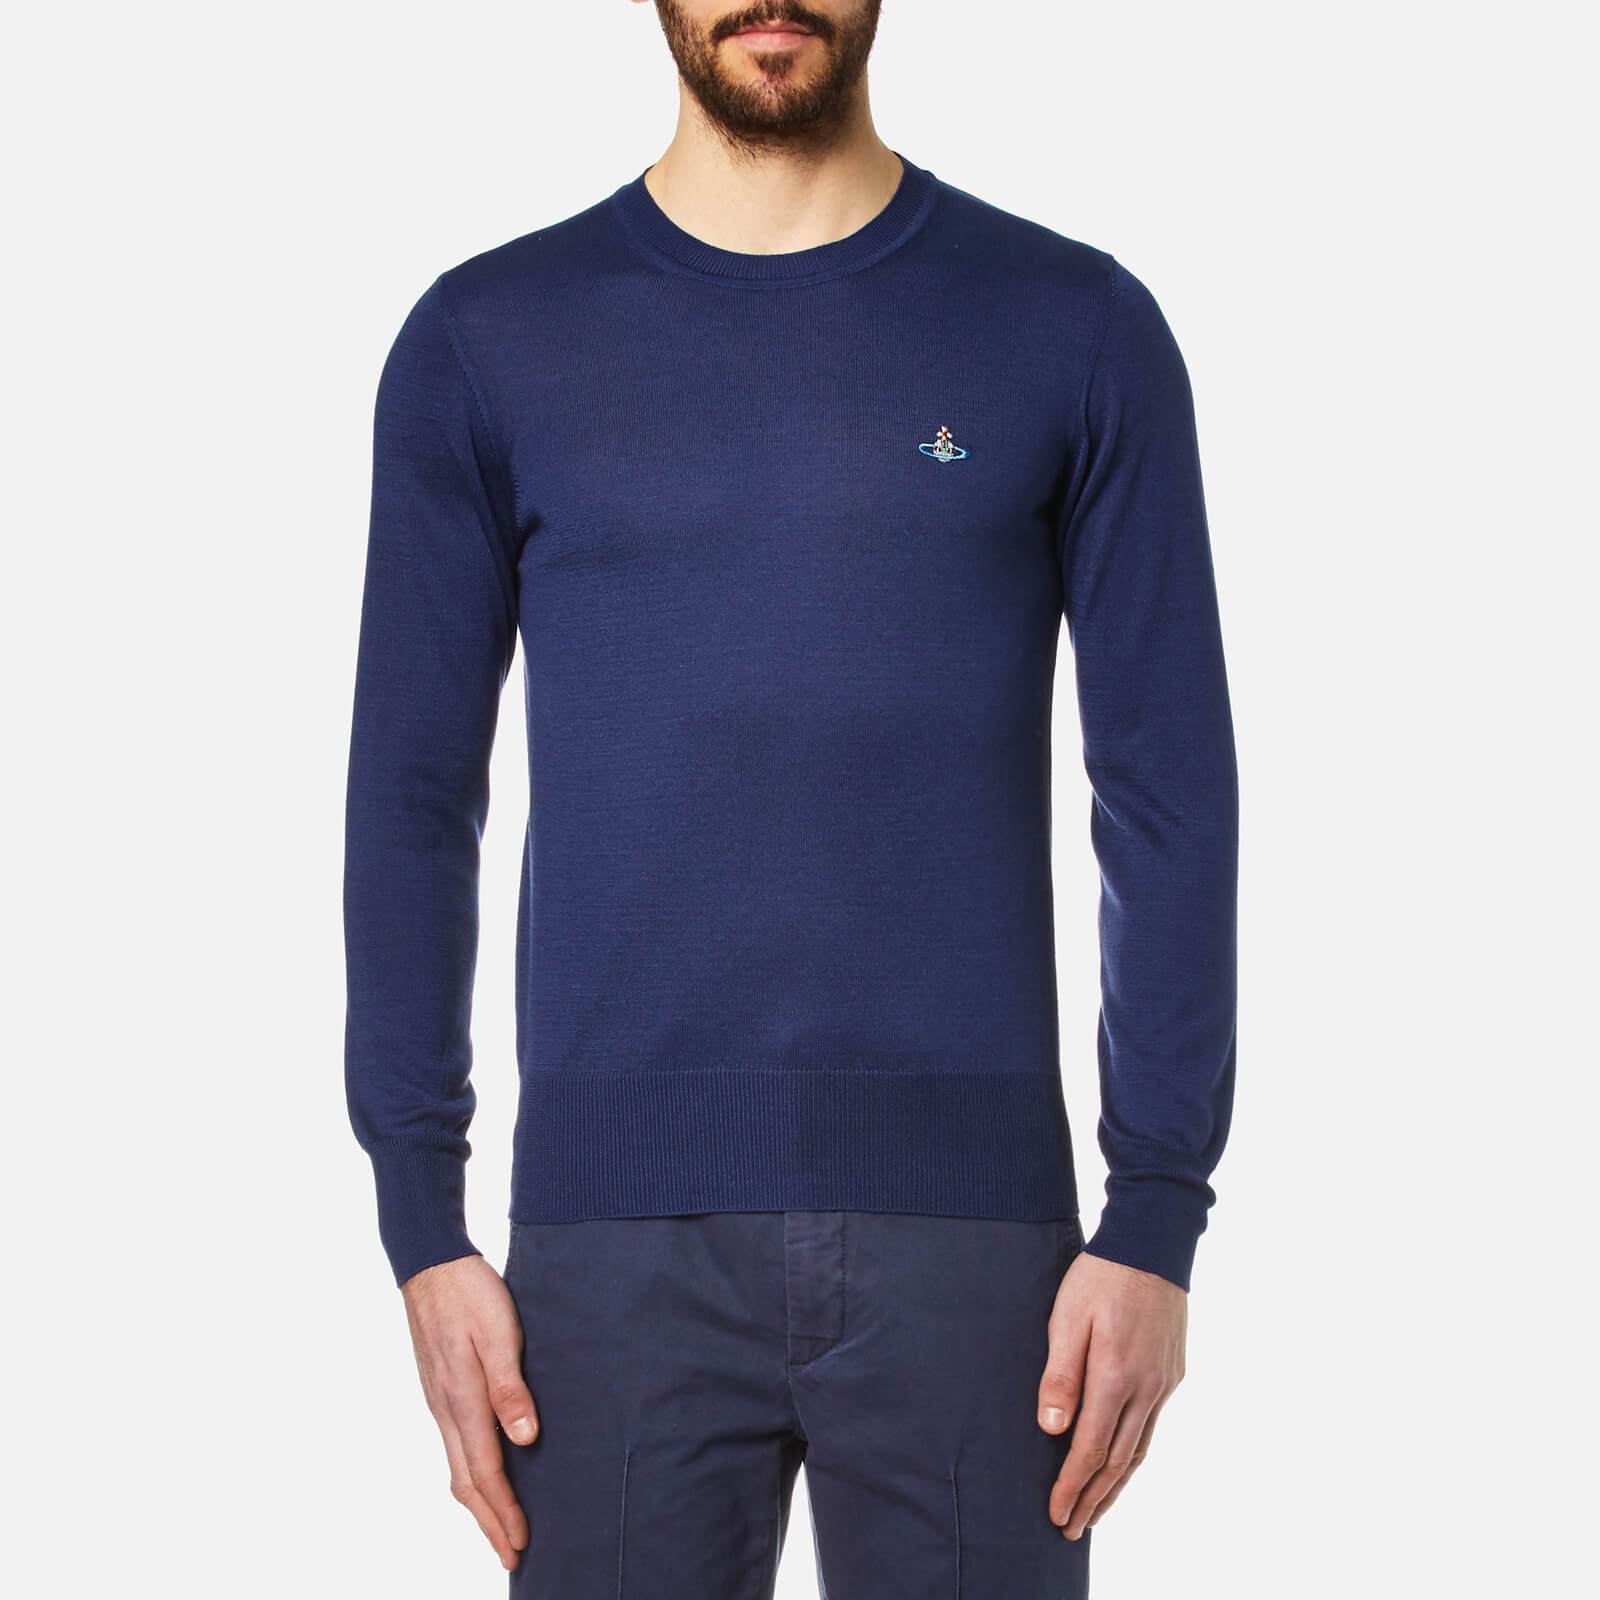 493b2e4d64 Vivienne Westwood Men's Crew Neck Classic Knitted Jumper - Blue - Free UK  Delivery over £50